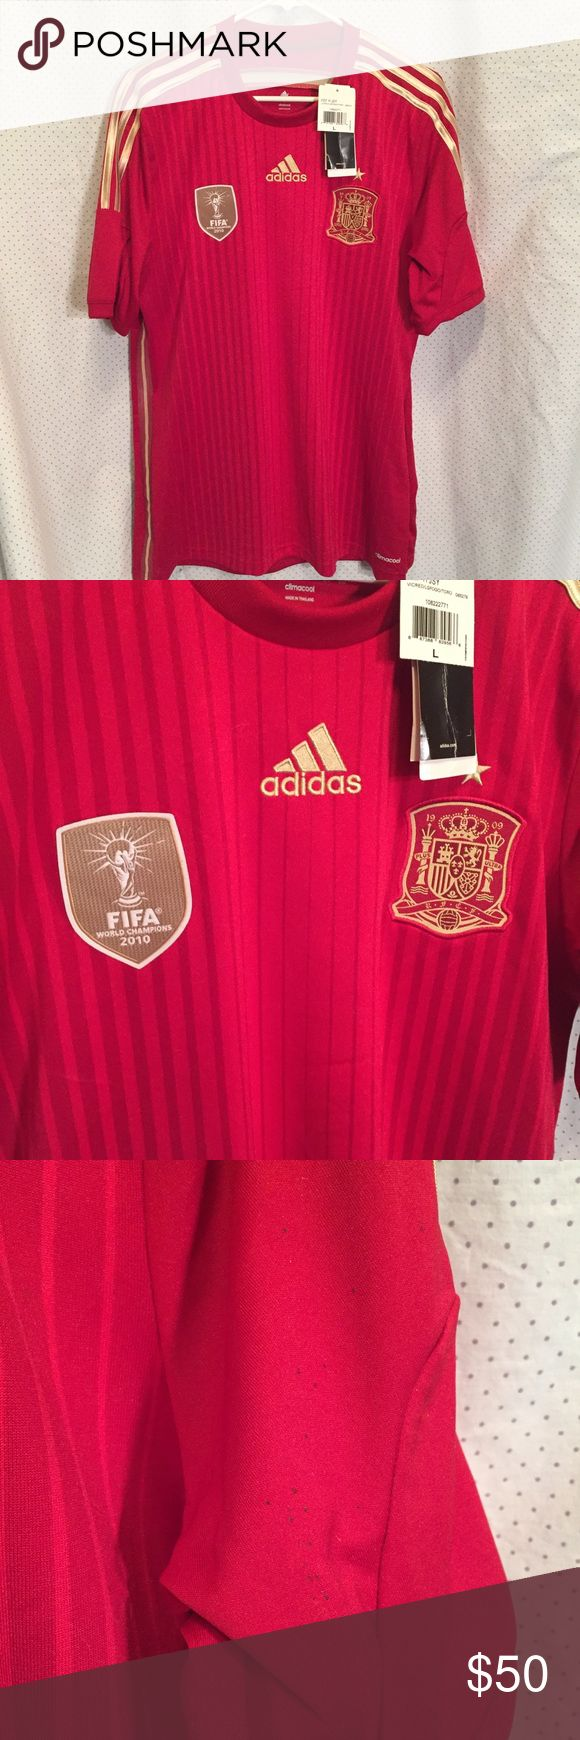 """Adidas Spain Soccer Jersey world champs 2010 NEW Adidas Spain Soccer Jersey with FIFA New with tags world champions 2010 patch. Red in red striped with gold detailed should strips.  New with tags, selling for my son, size large. There are some tiny spots in left arm, I'm sure they will come out in the wash but since this is new with tags I don't want to wash it. Measures, 42x30"""" adidas Shirts"""